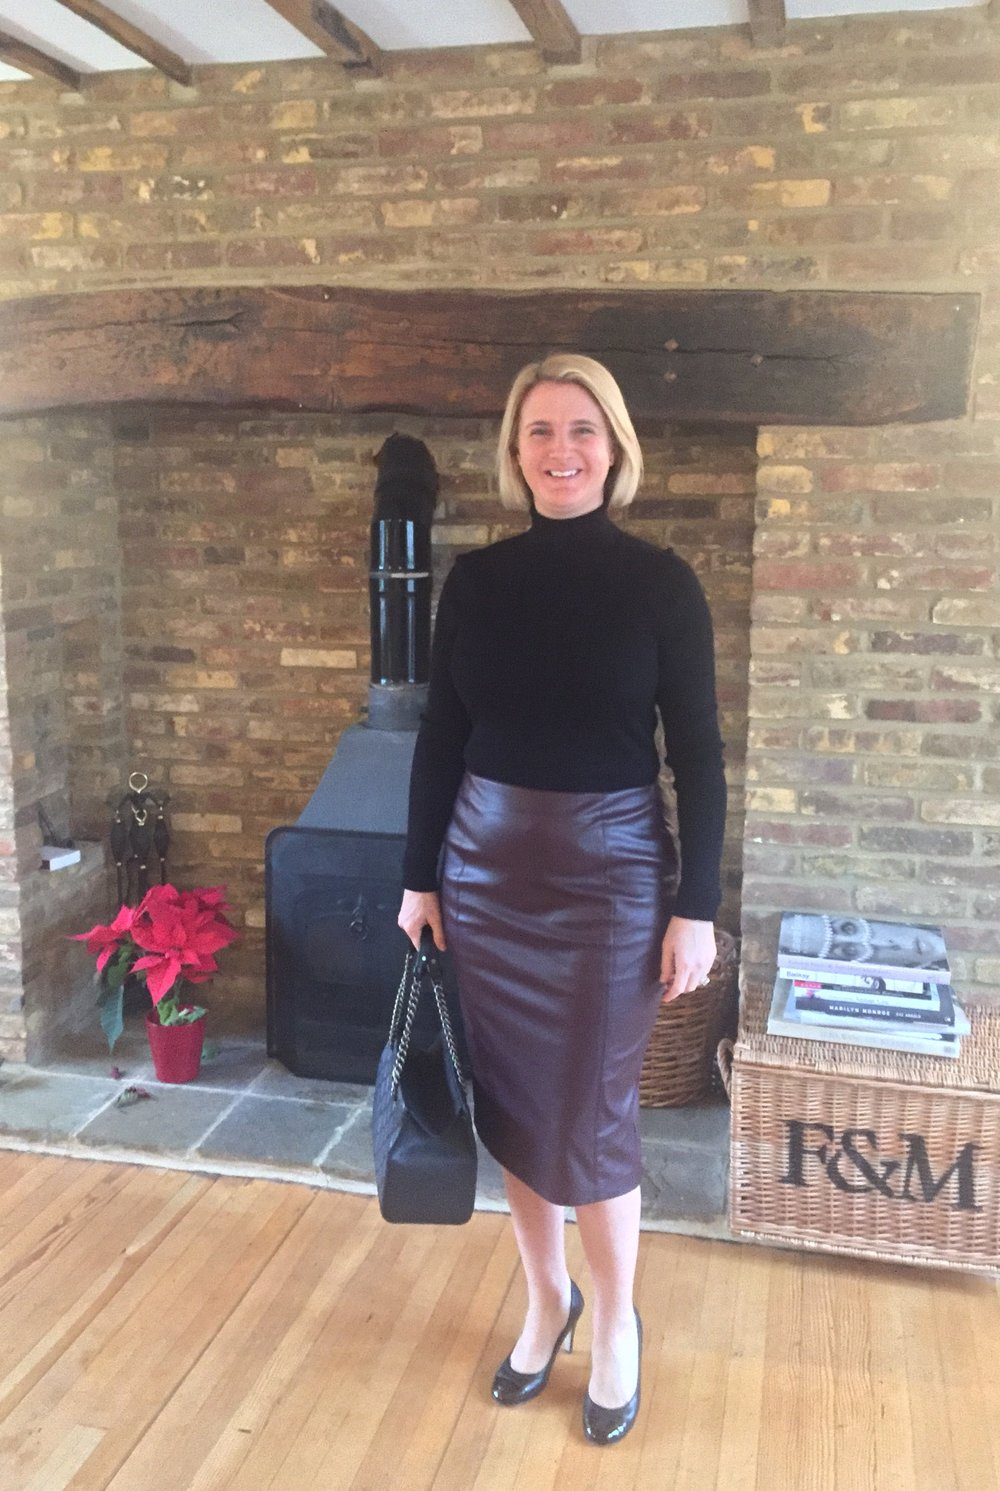 Woman at M&S for sunday lunch. Top and Skirt from Marks and Spencer, Bag and Shoes from Chanel.